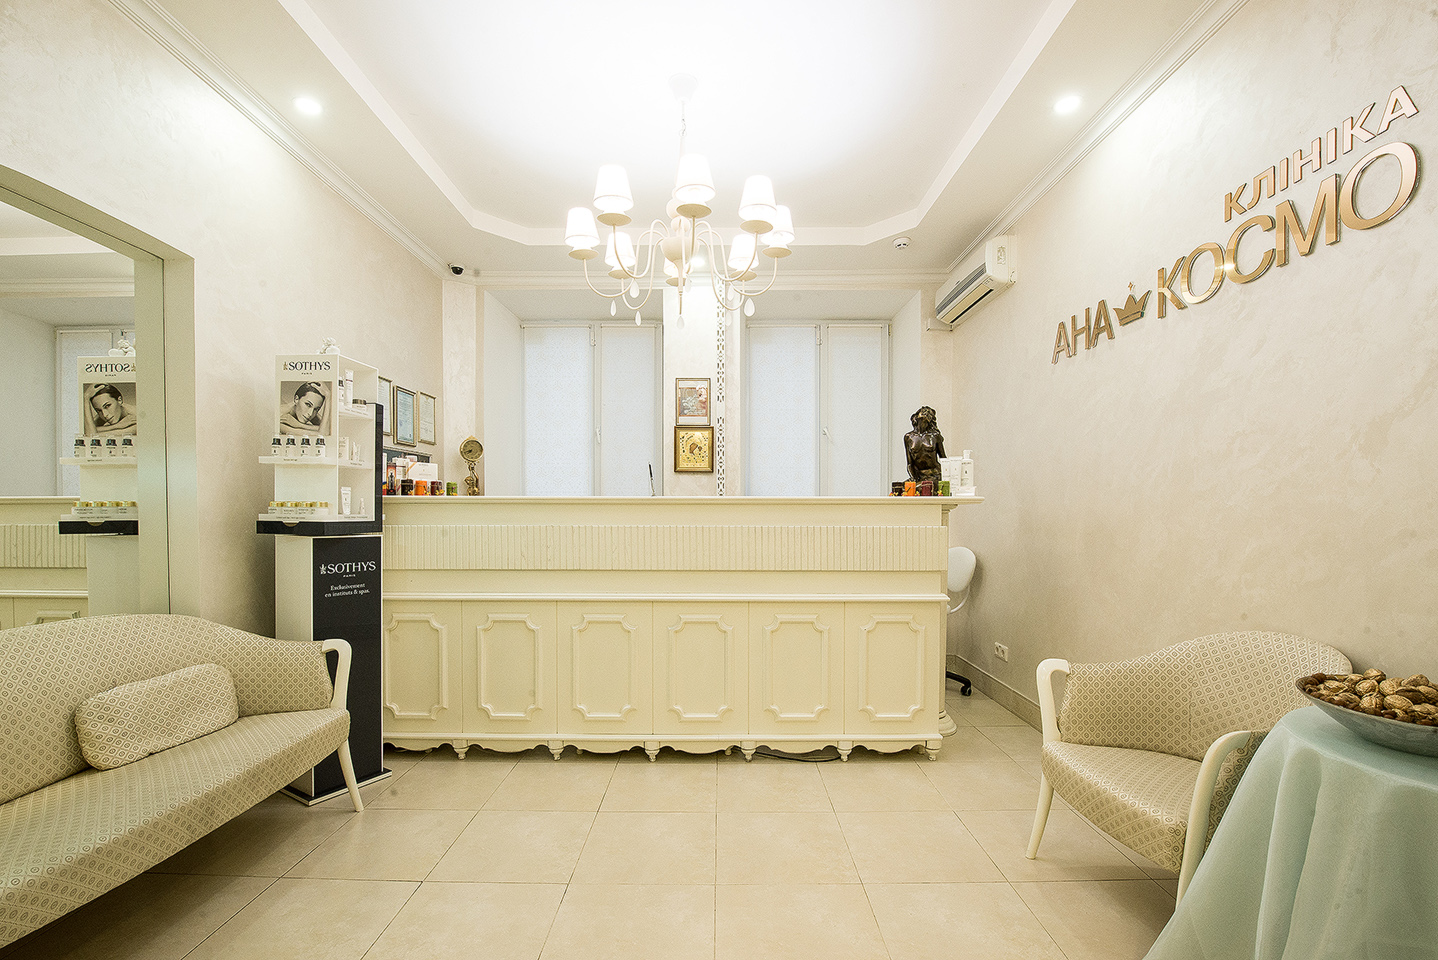 Plastic Surgery and Anti-Age Medicine Clinic ANA-COSMOSince 1997 ANA-COSMO holds the position of the leader in the list of the most prestigious clinics in Ukraine and the CIS. Ana-Cosmo is legislator and expert in the field of plastic surgery, aesthetic medicine, cosmetology and medical rejuvenation of the body.